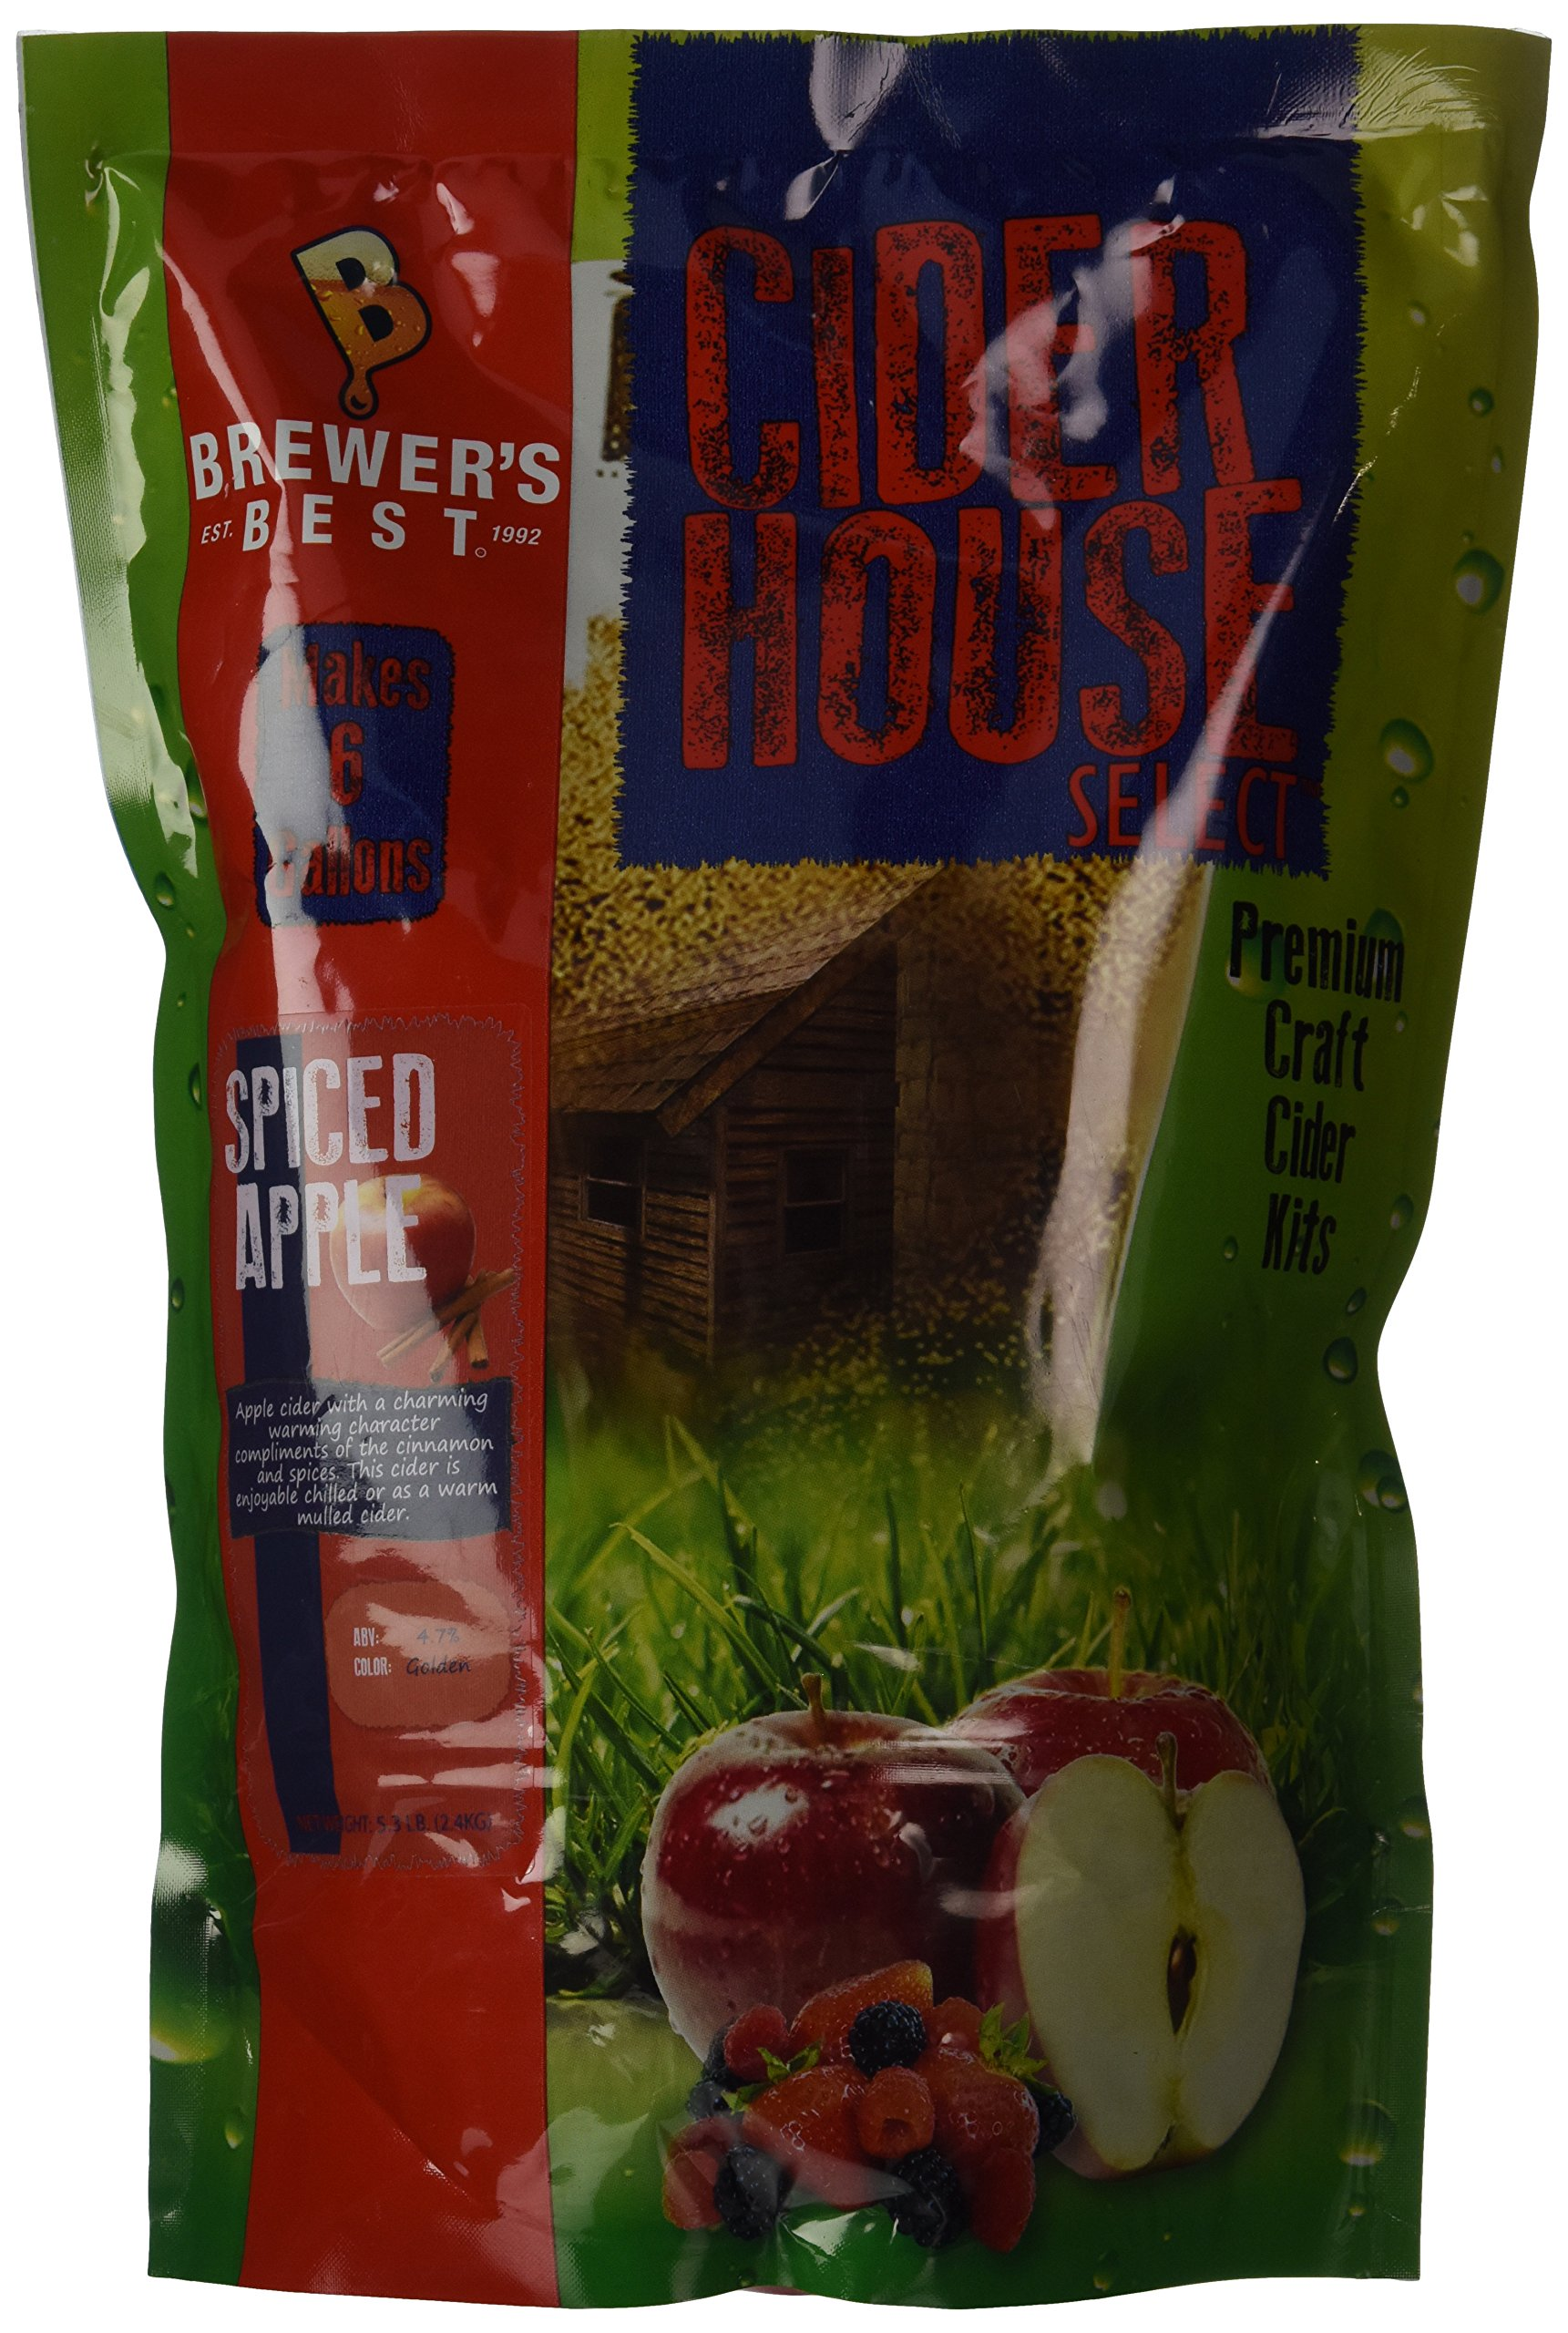 Home Brew Ohio Brewer's Best Cider House Select Spiced Apple Cider Kit